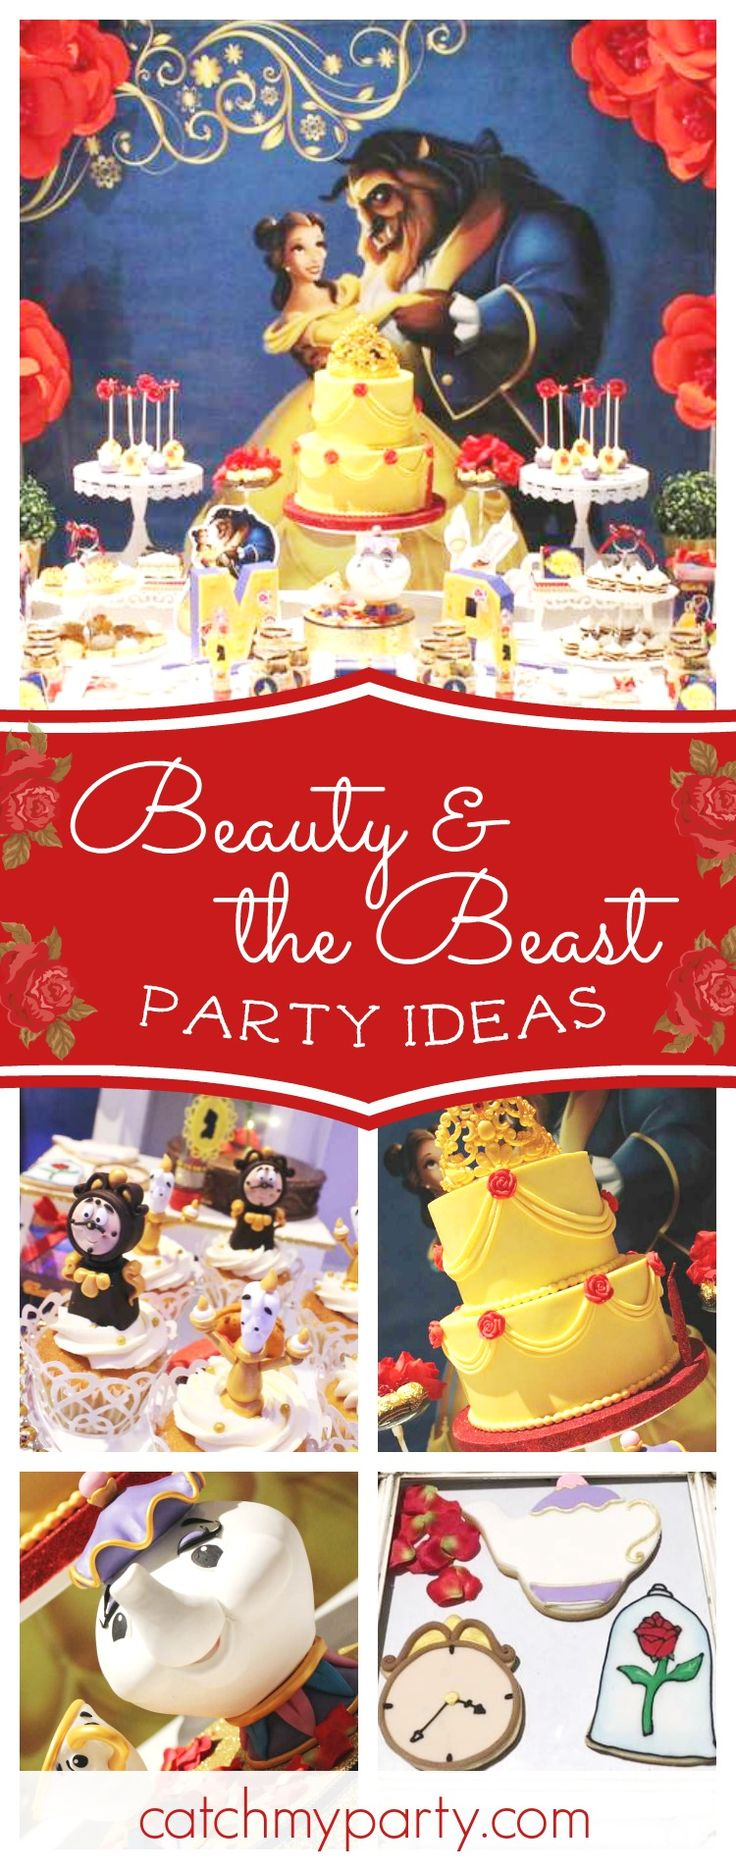 Don't miss this splendid Beauty and the Beast birthday party. The dessert table and decor area amazing!! See more party ideas and share yours at CatchMyParty.com